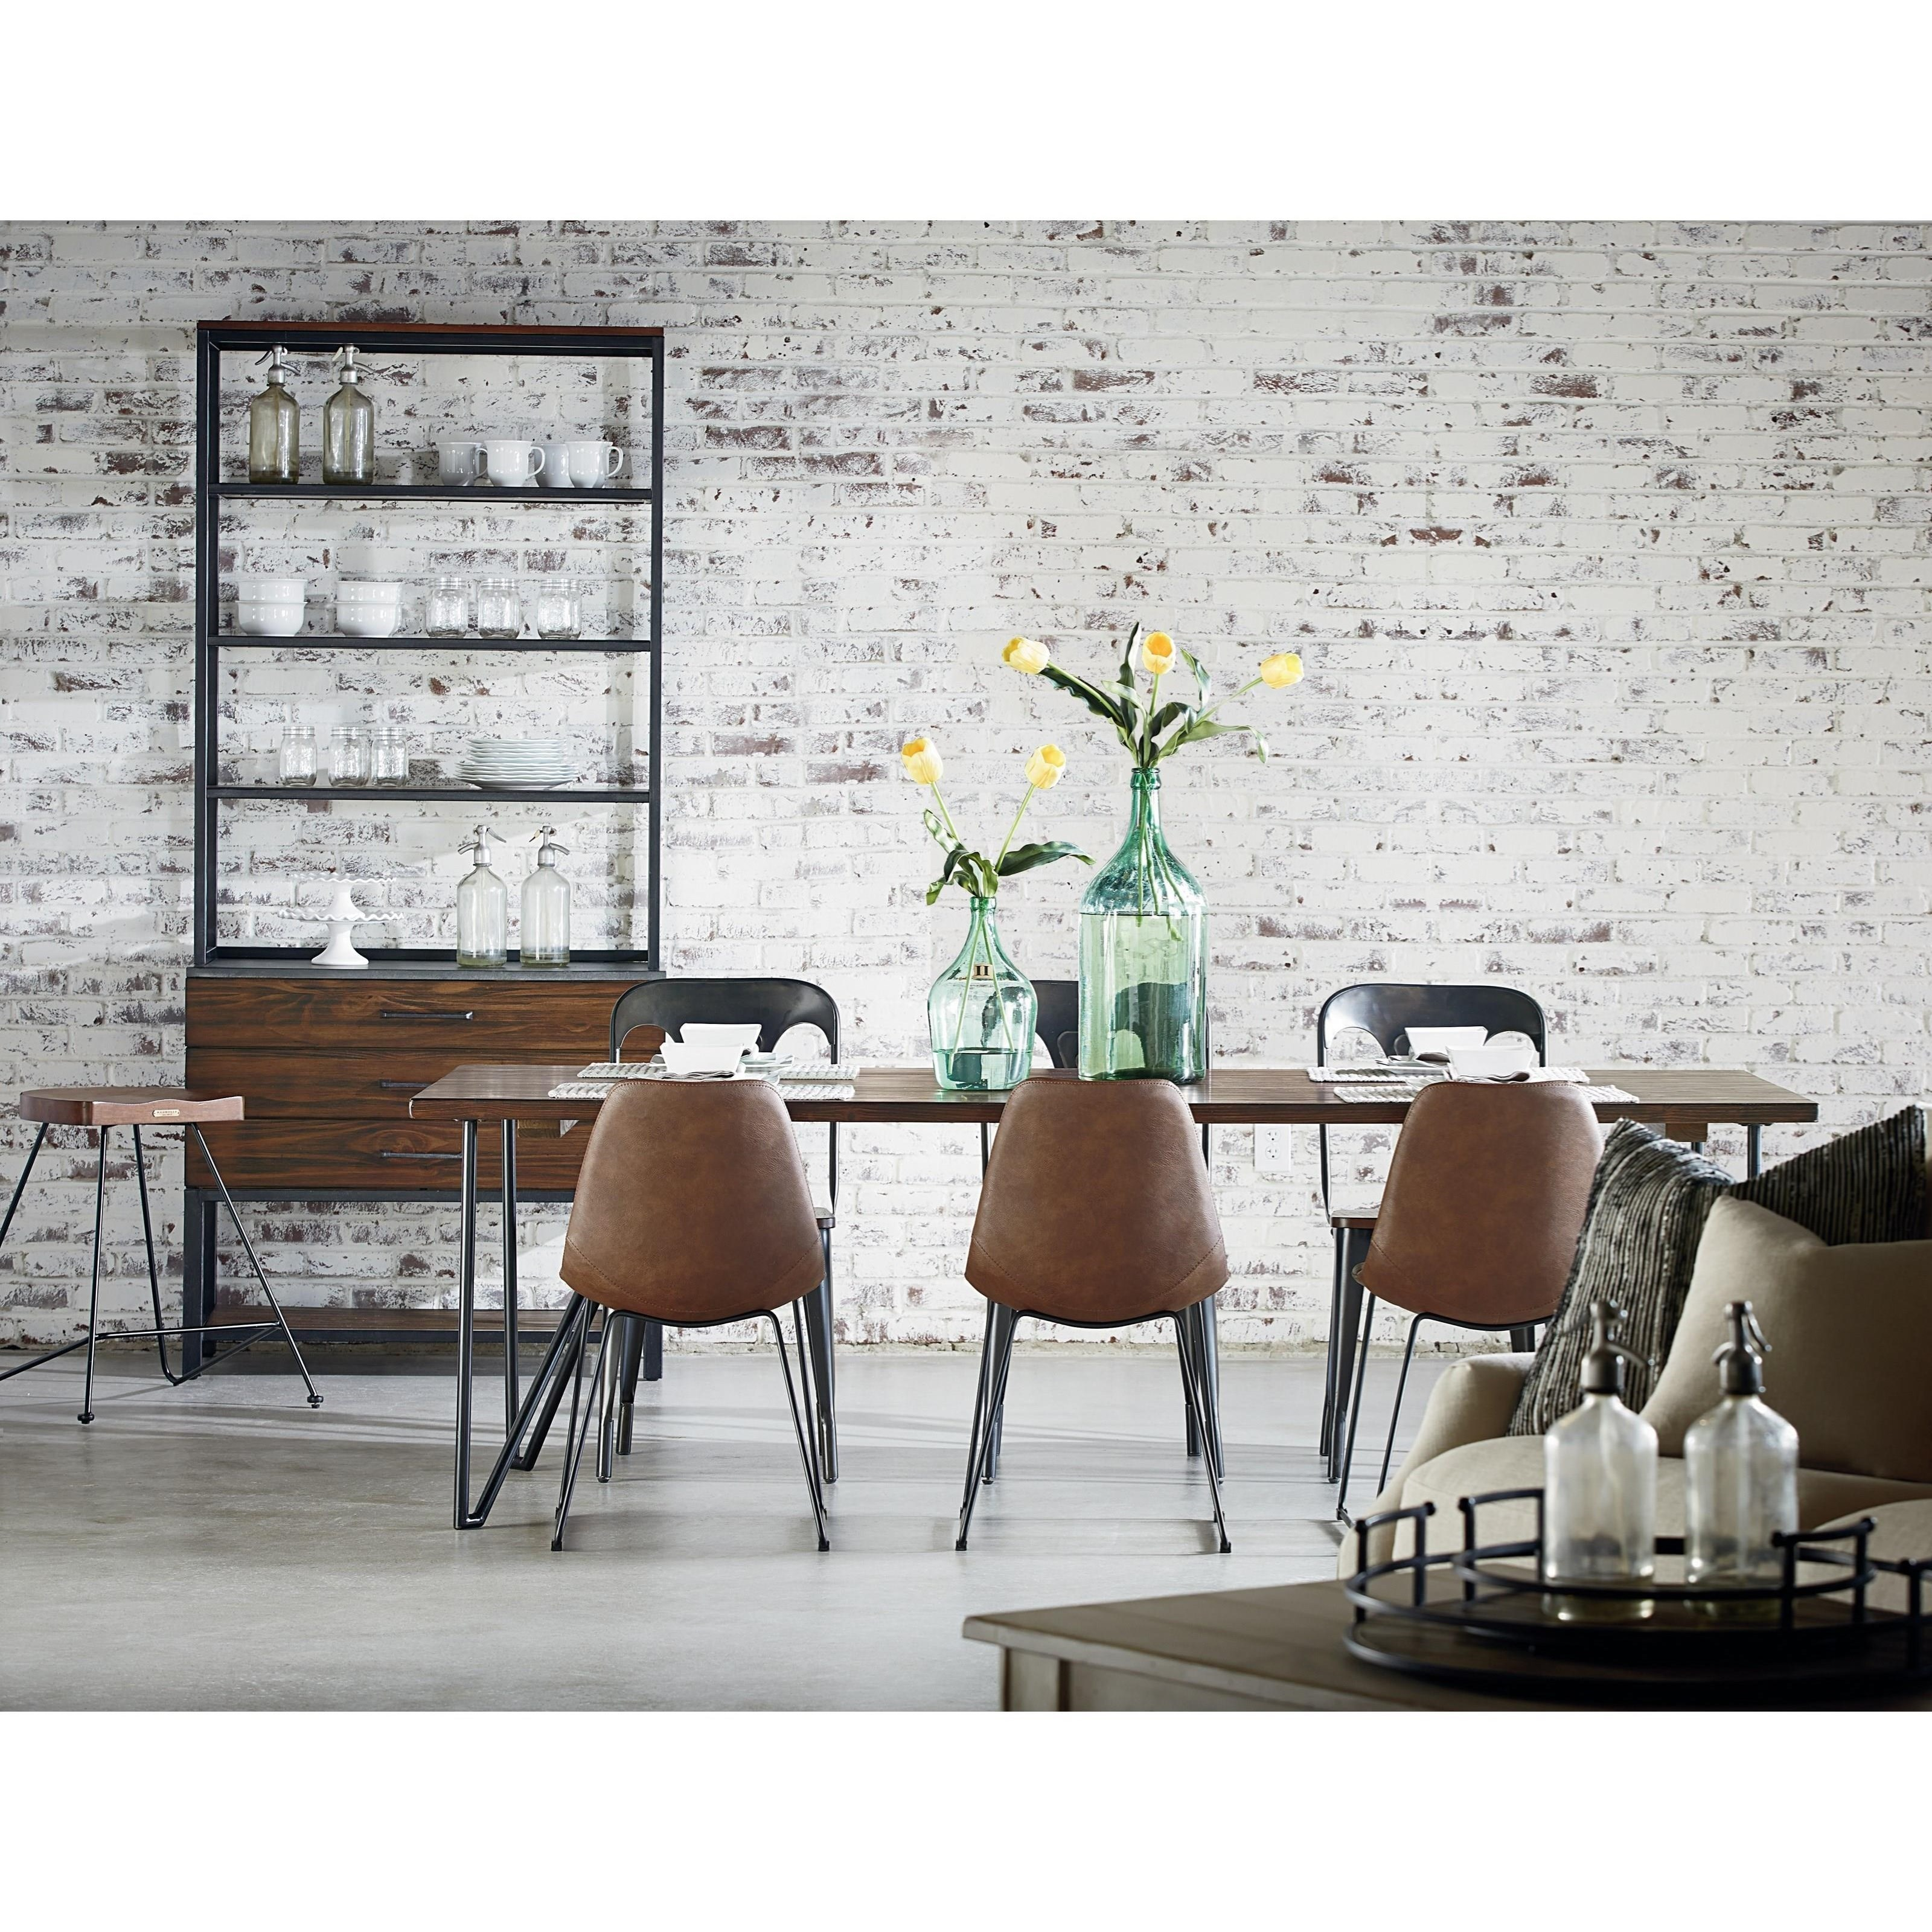 Metal Cafe Chair With Barn Door Seat By Magnolia Home By Joanna